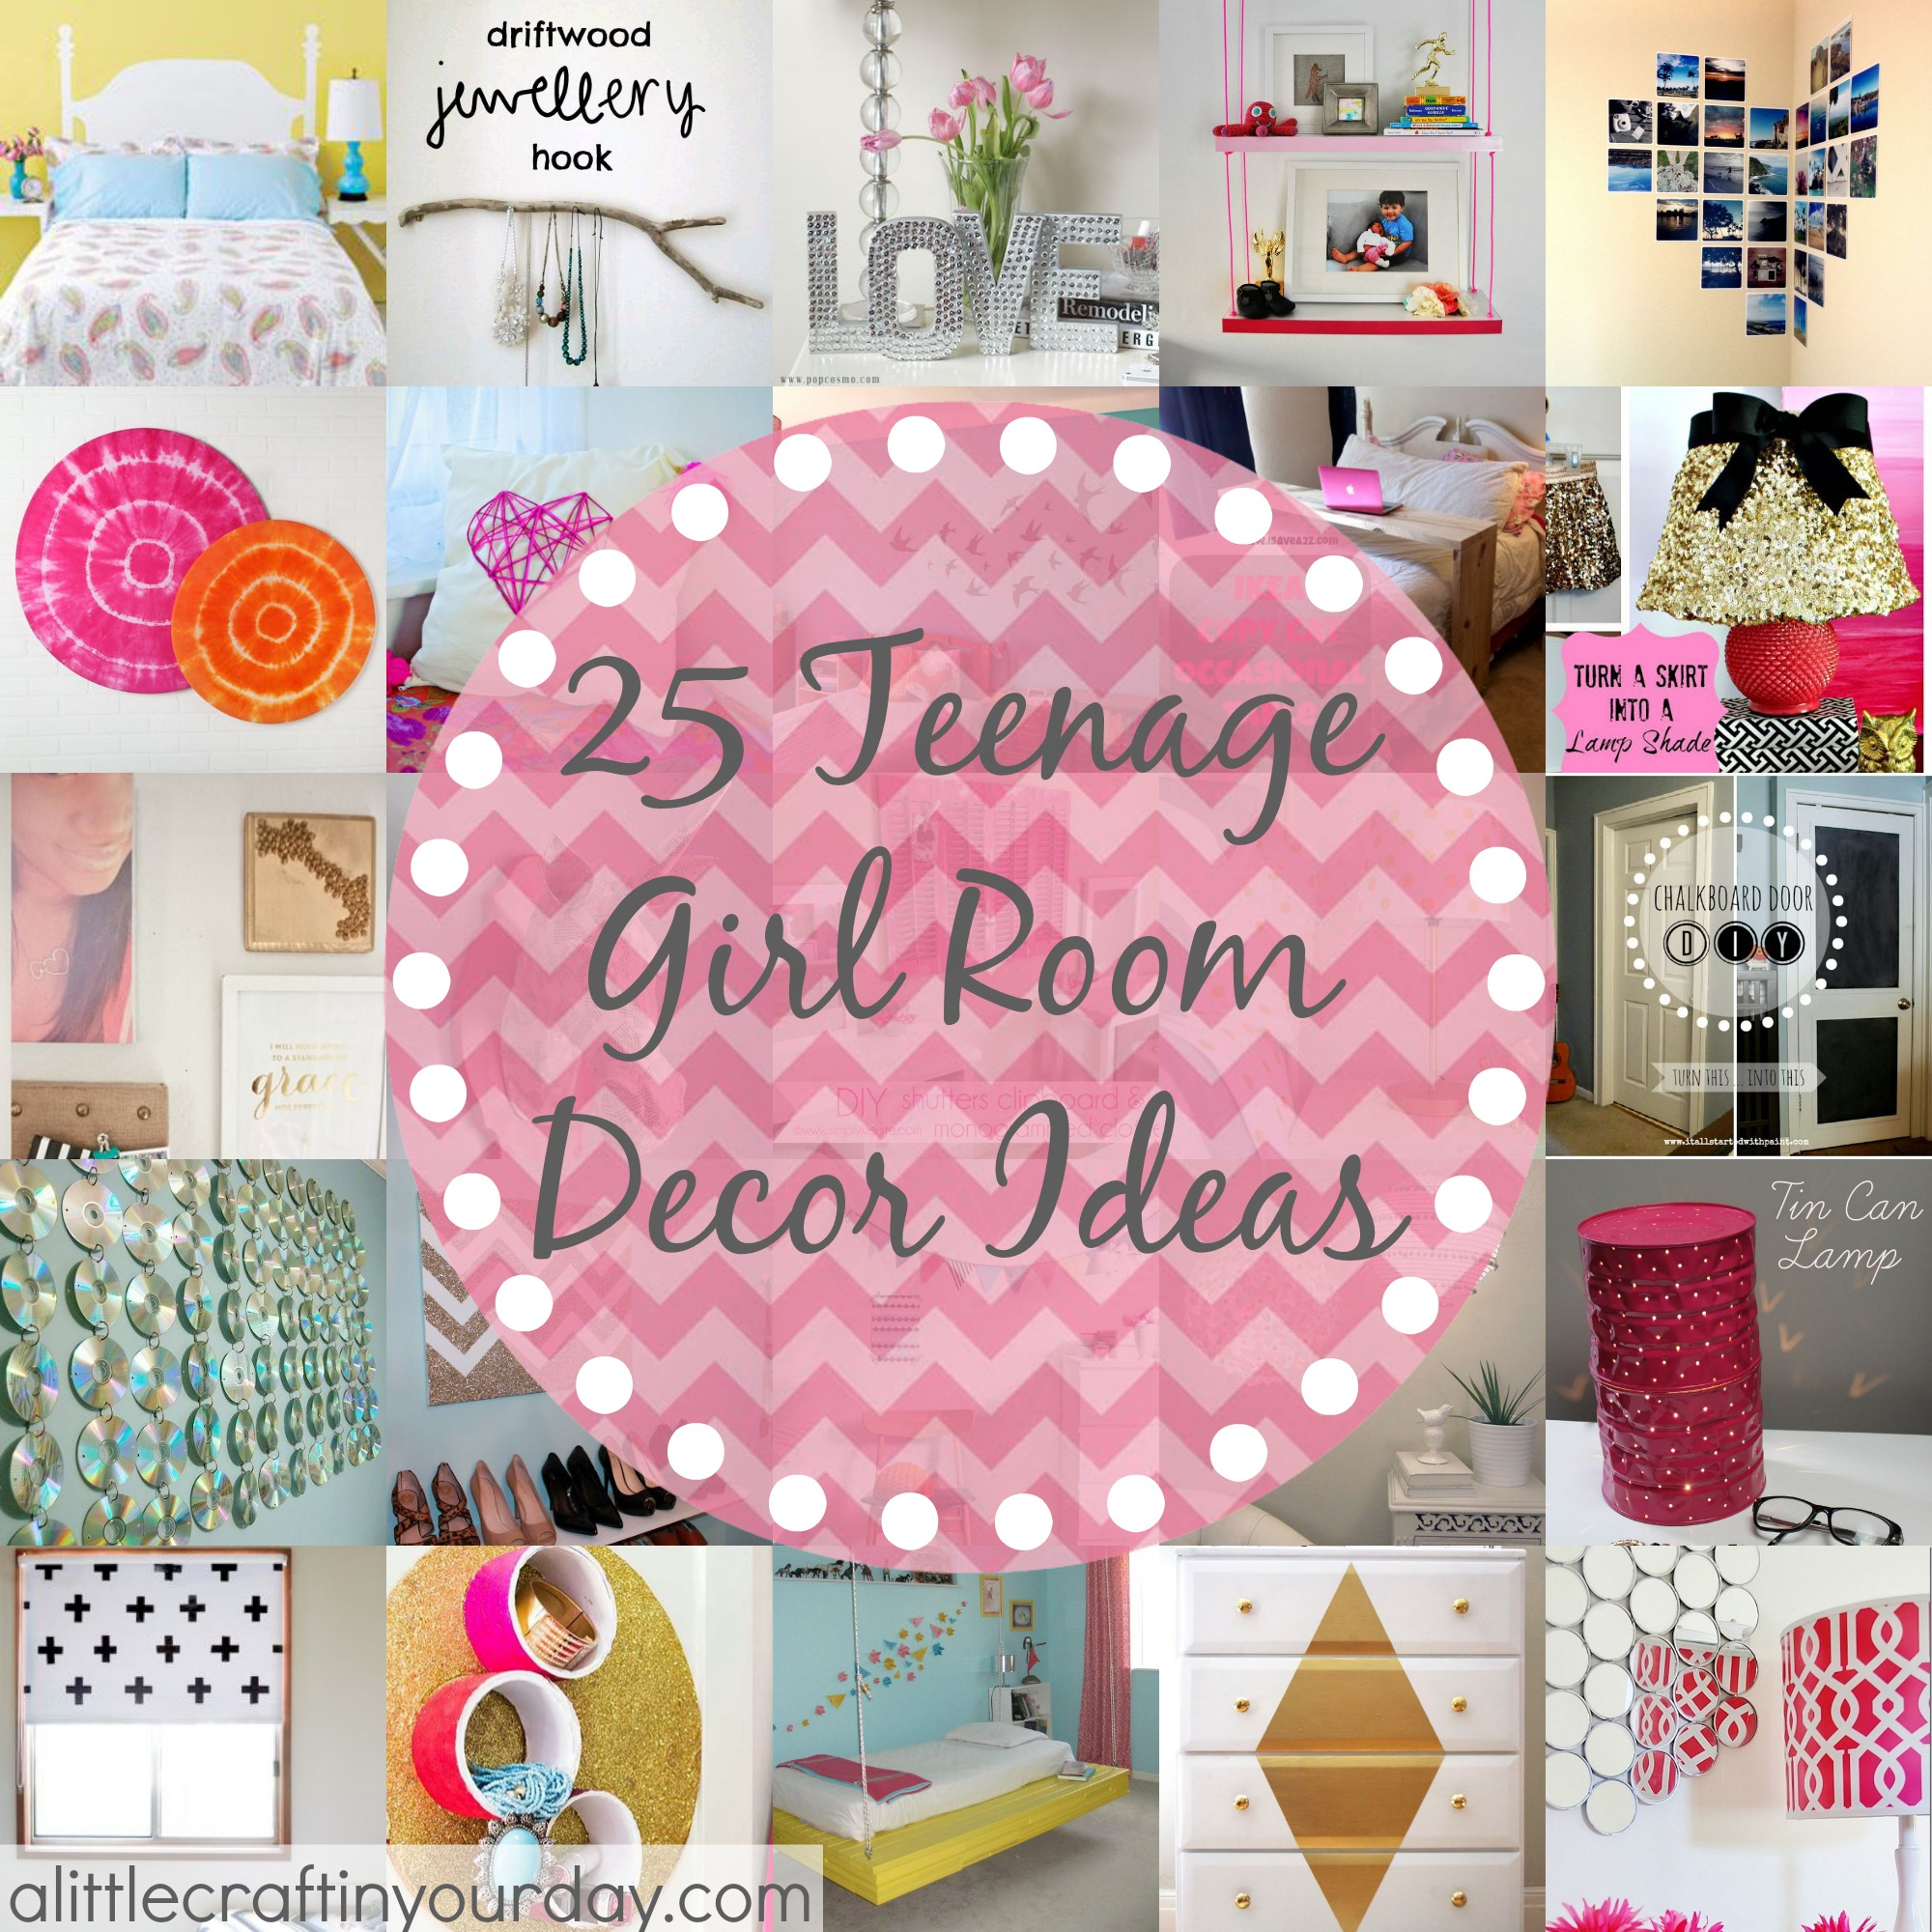 Wonderful 4/30 | 25 More Teenage Girl Room Decor Ideas